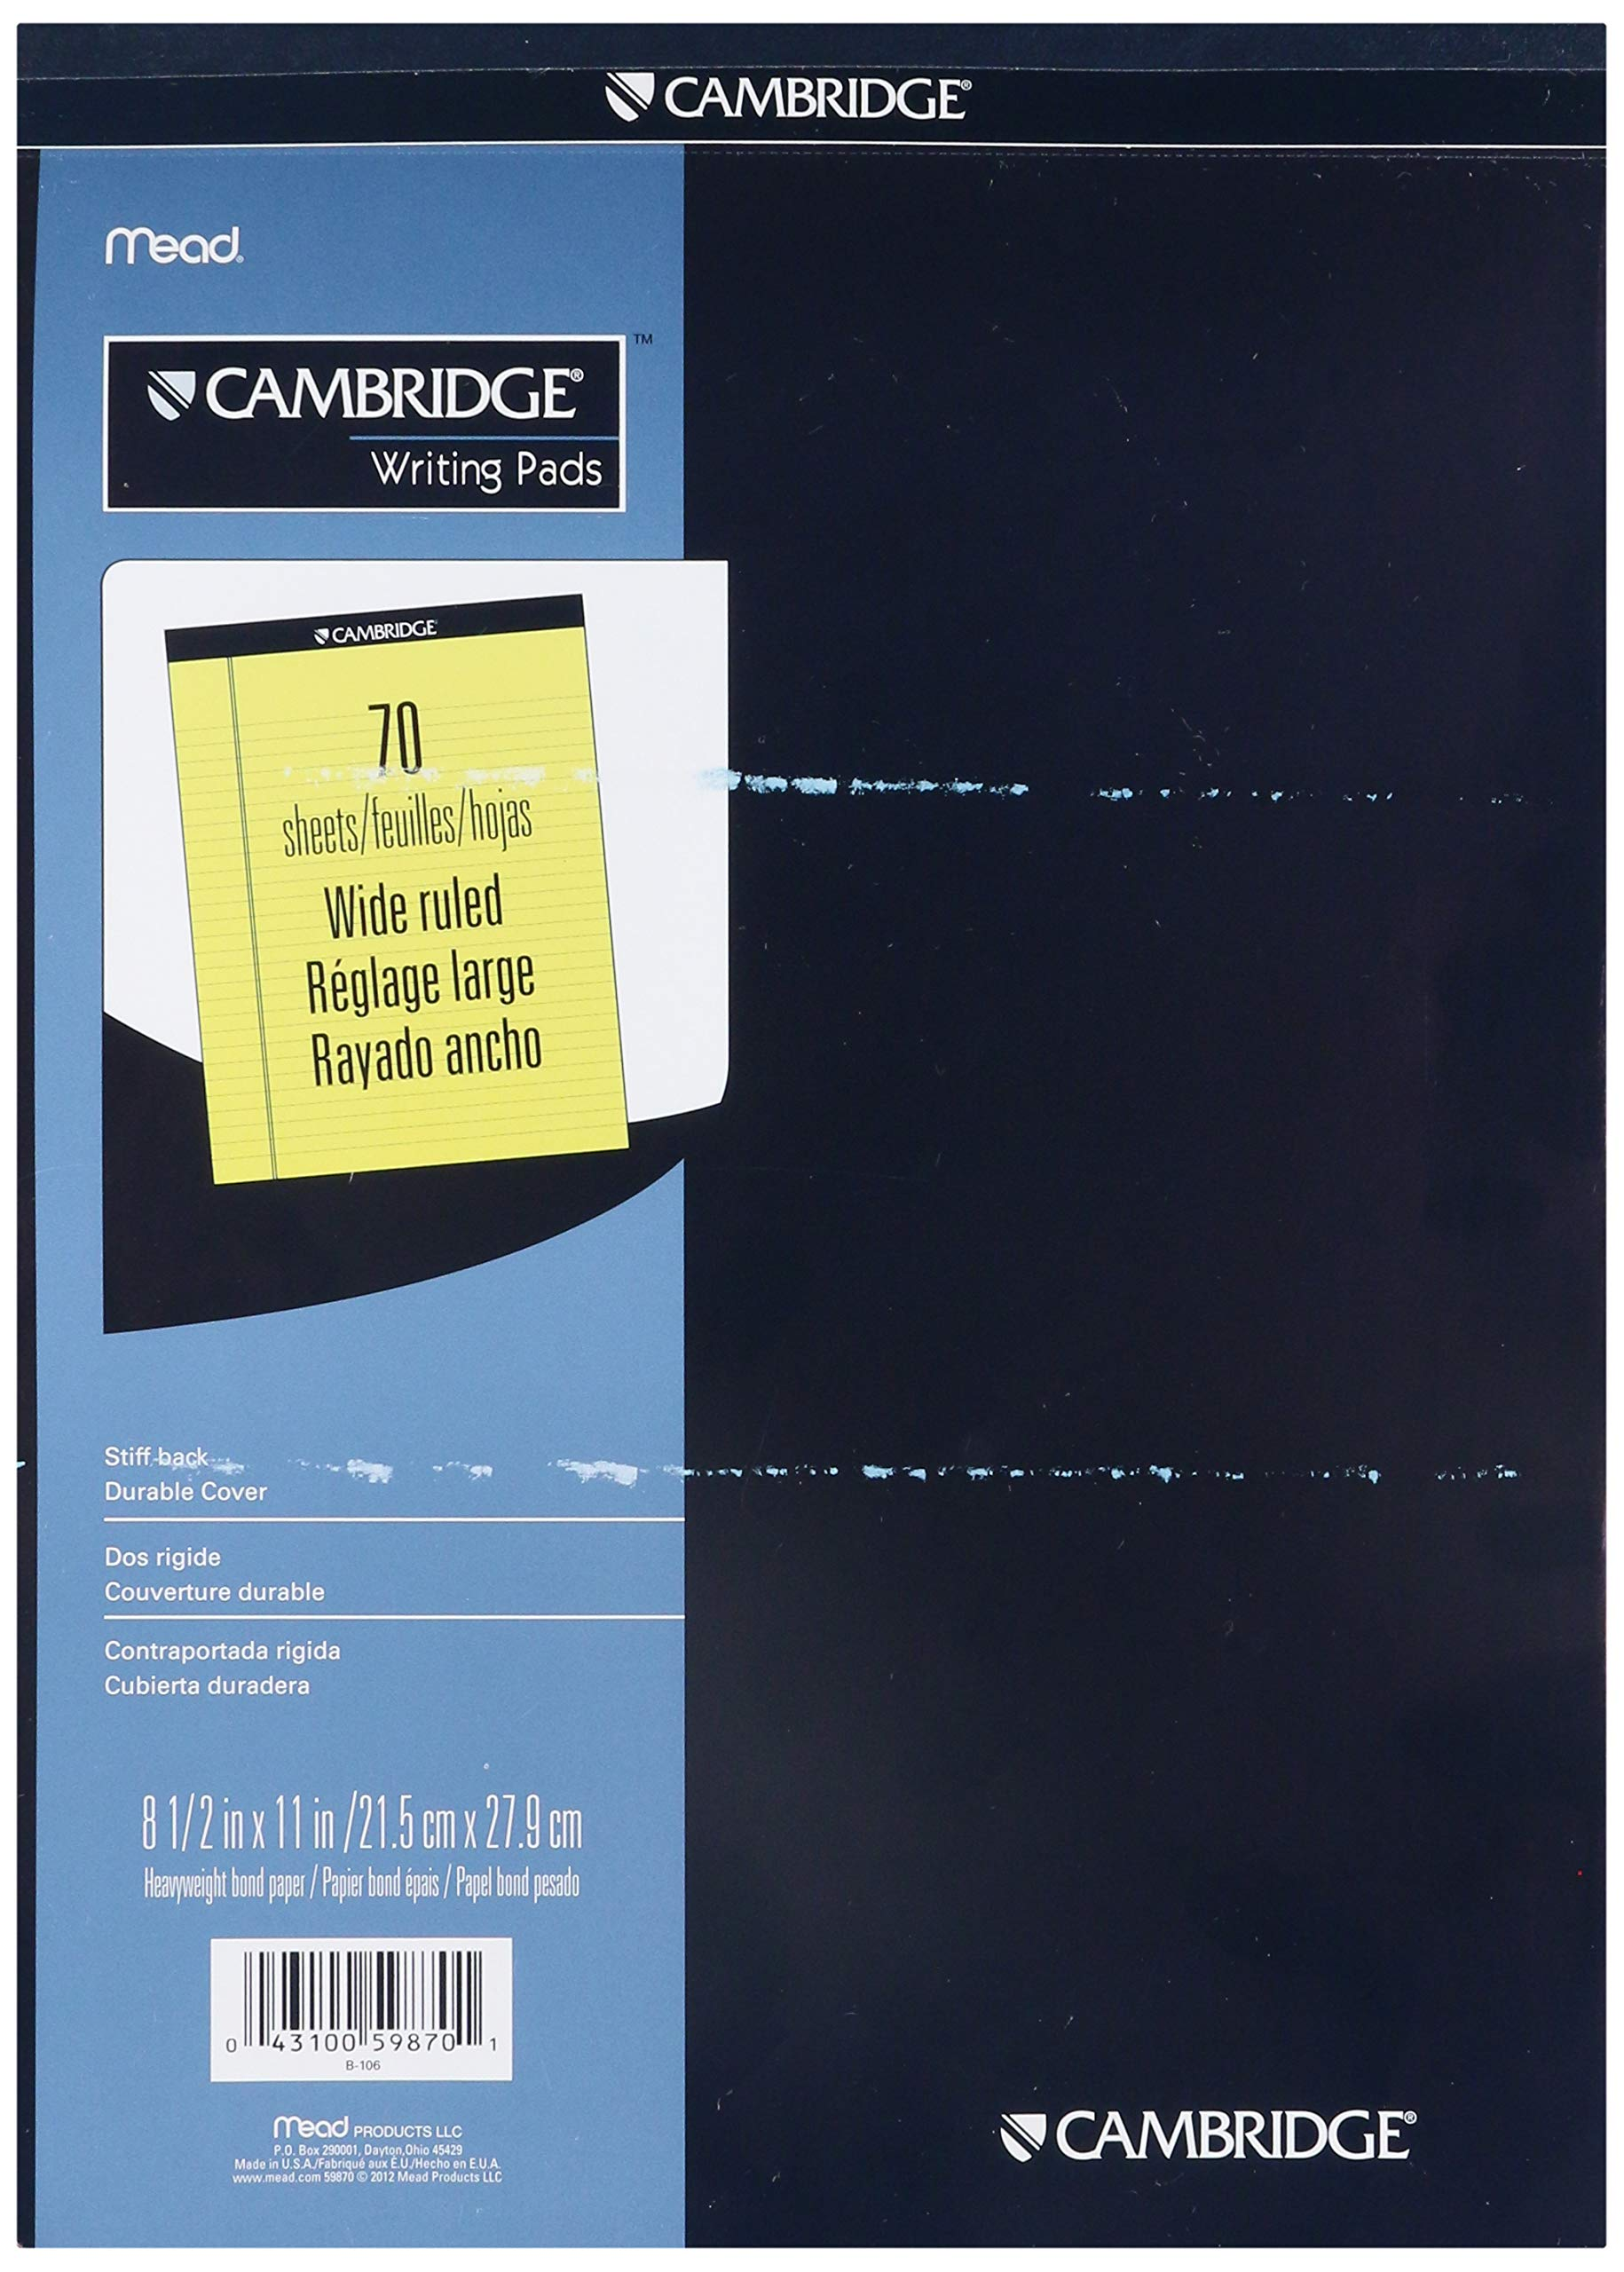 Mead Cambridge Stiff-Back Pad, Wide Ruled, 8.5 x 11 Inches, Canary, 70 Sheets per Pad, 12 Pads per Pack (59870) by Mead (Image #1)